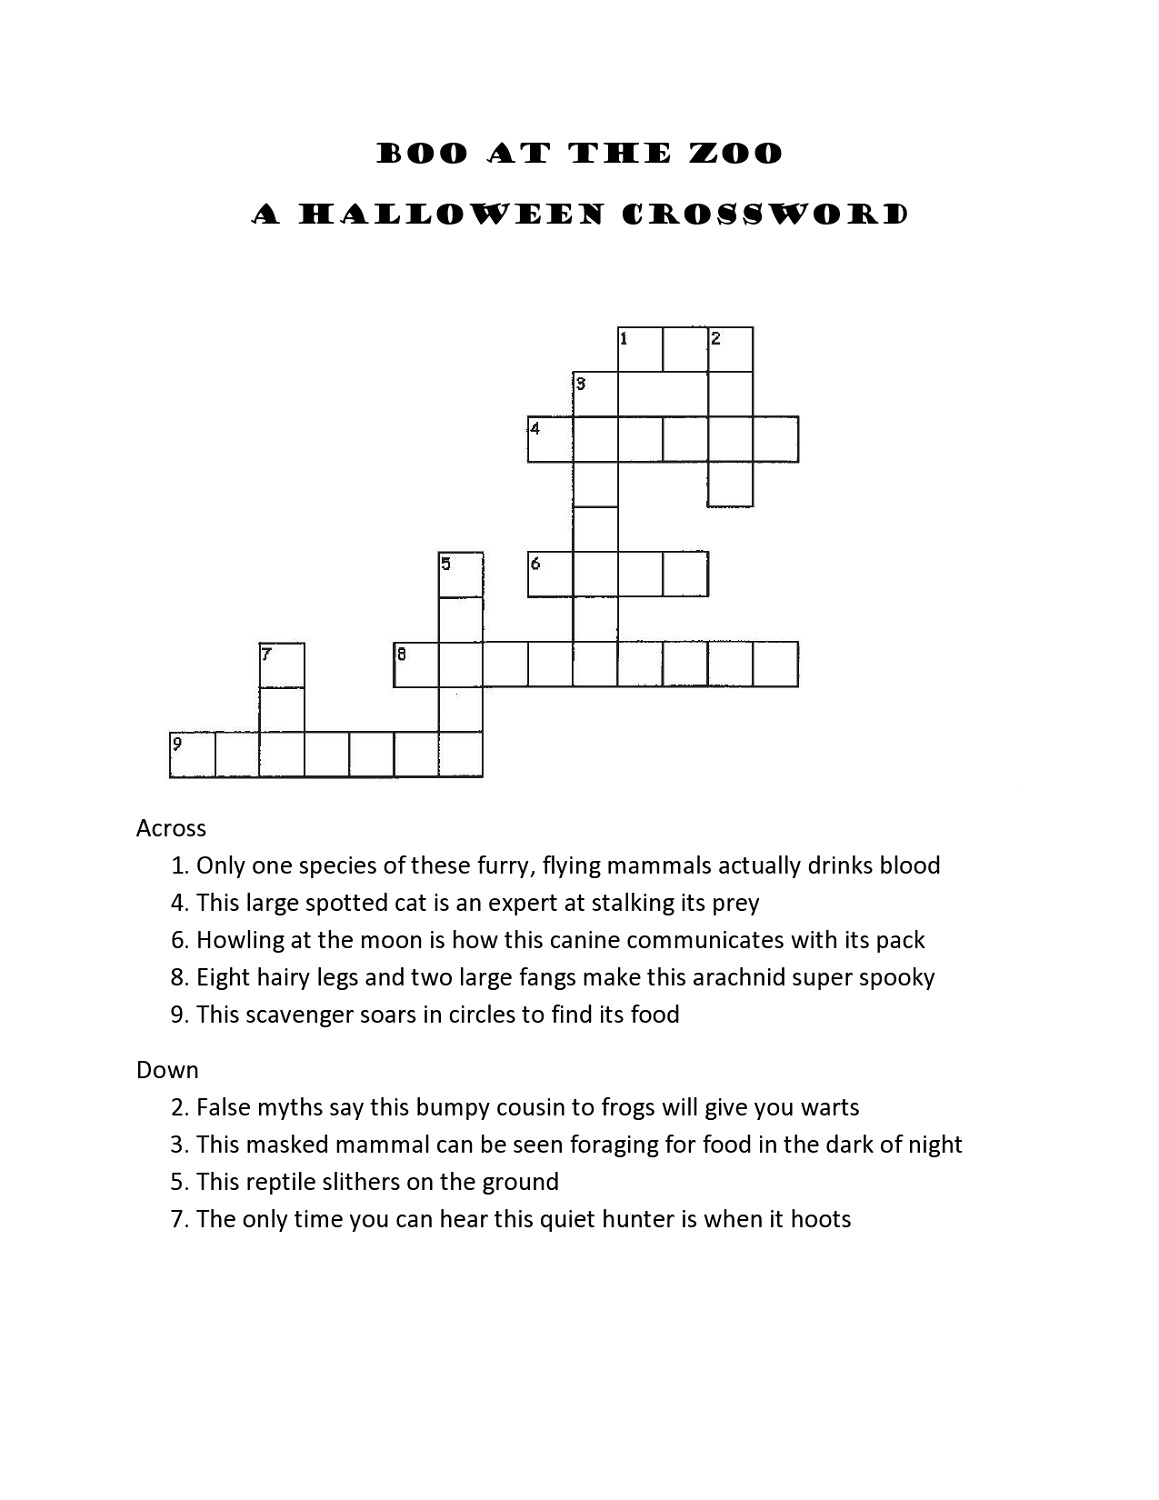 Crossword Puzzles For 5Th Graders | Activity Shelter - Printable Crossword Puzzles For 8Th Graders